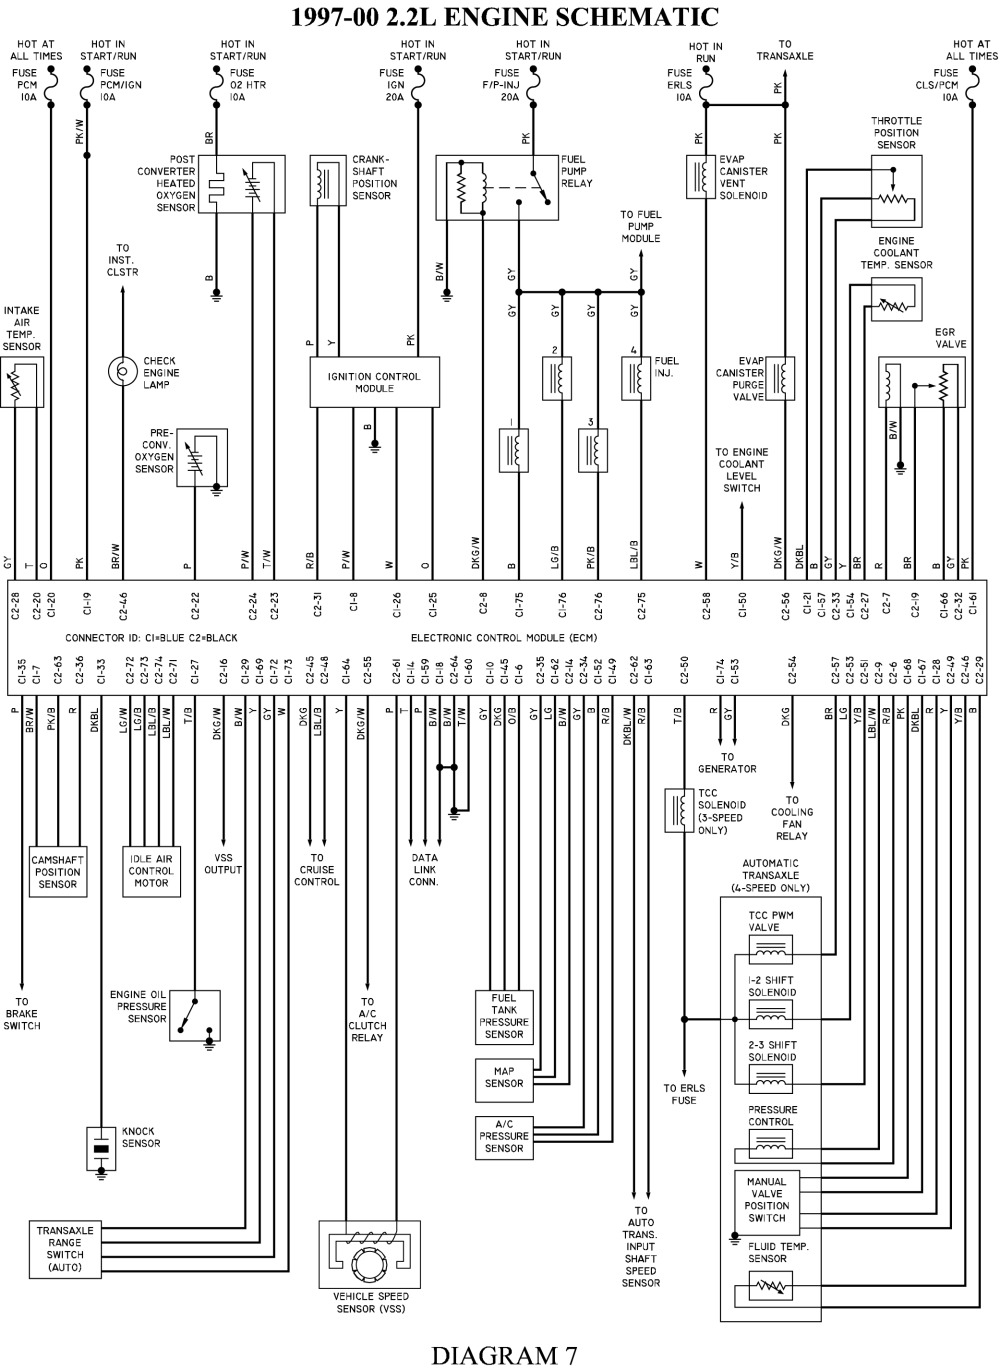 medium resolution of 2000 chevy cavalier computer location 2000 free engine ac system diagram for wiring on 2001 cavalier 2005 chevy cavalier power window wiring diagram